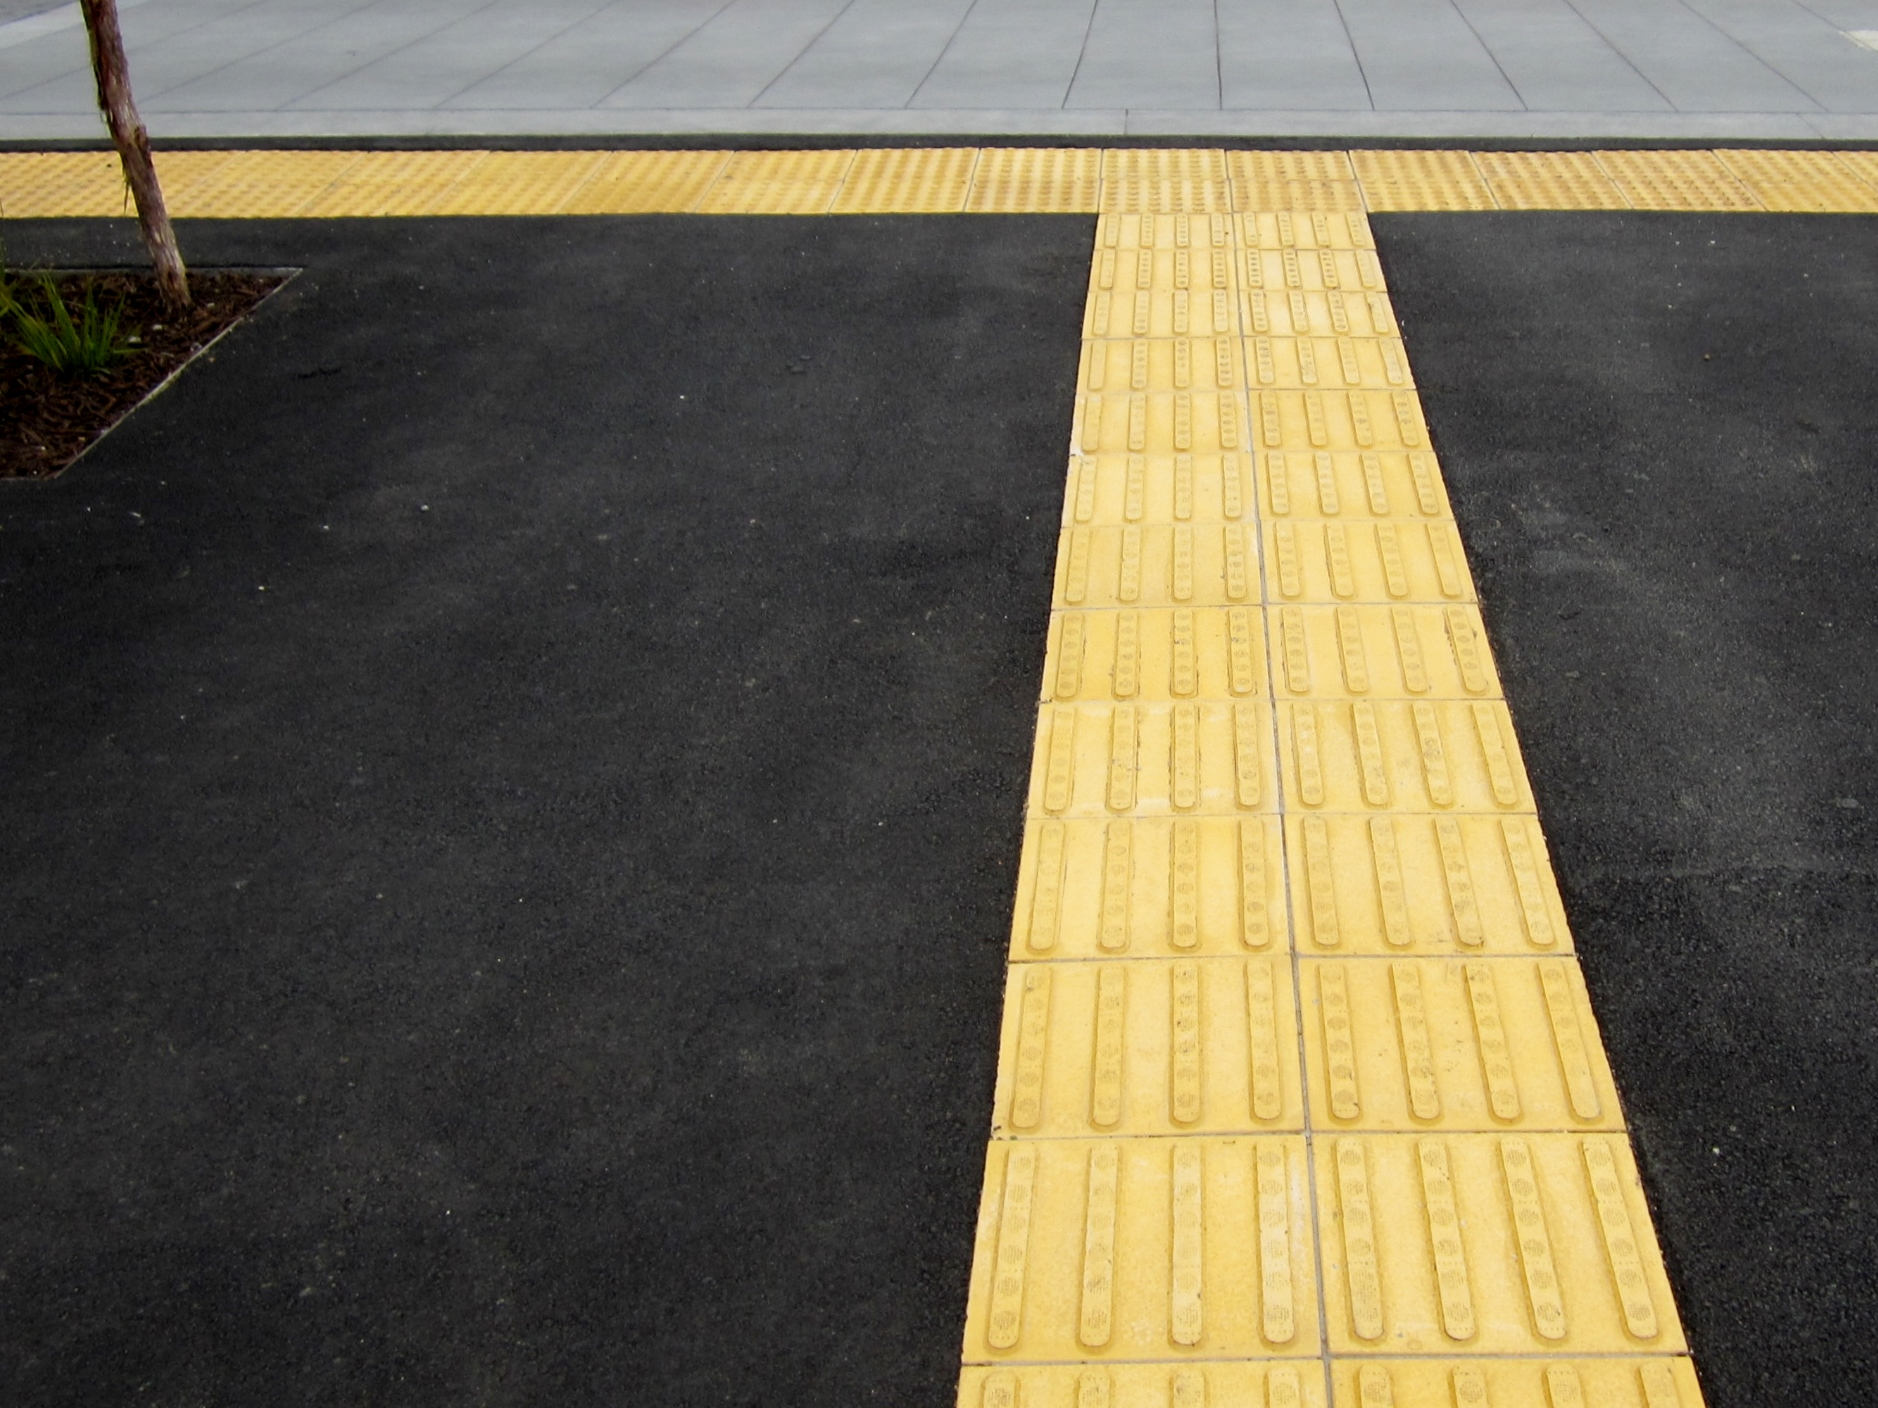 Directional Tactile Pavers For Enhanced Safety